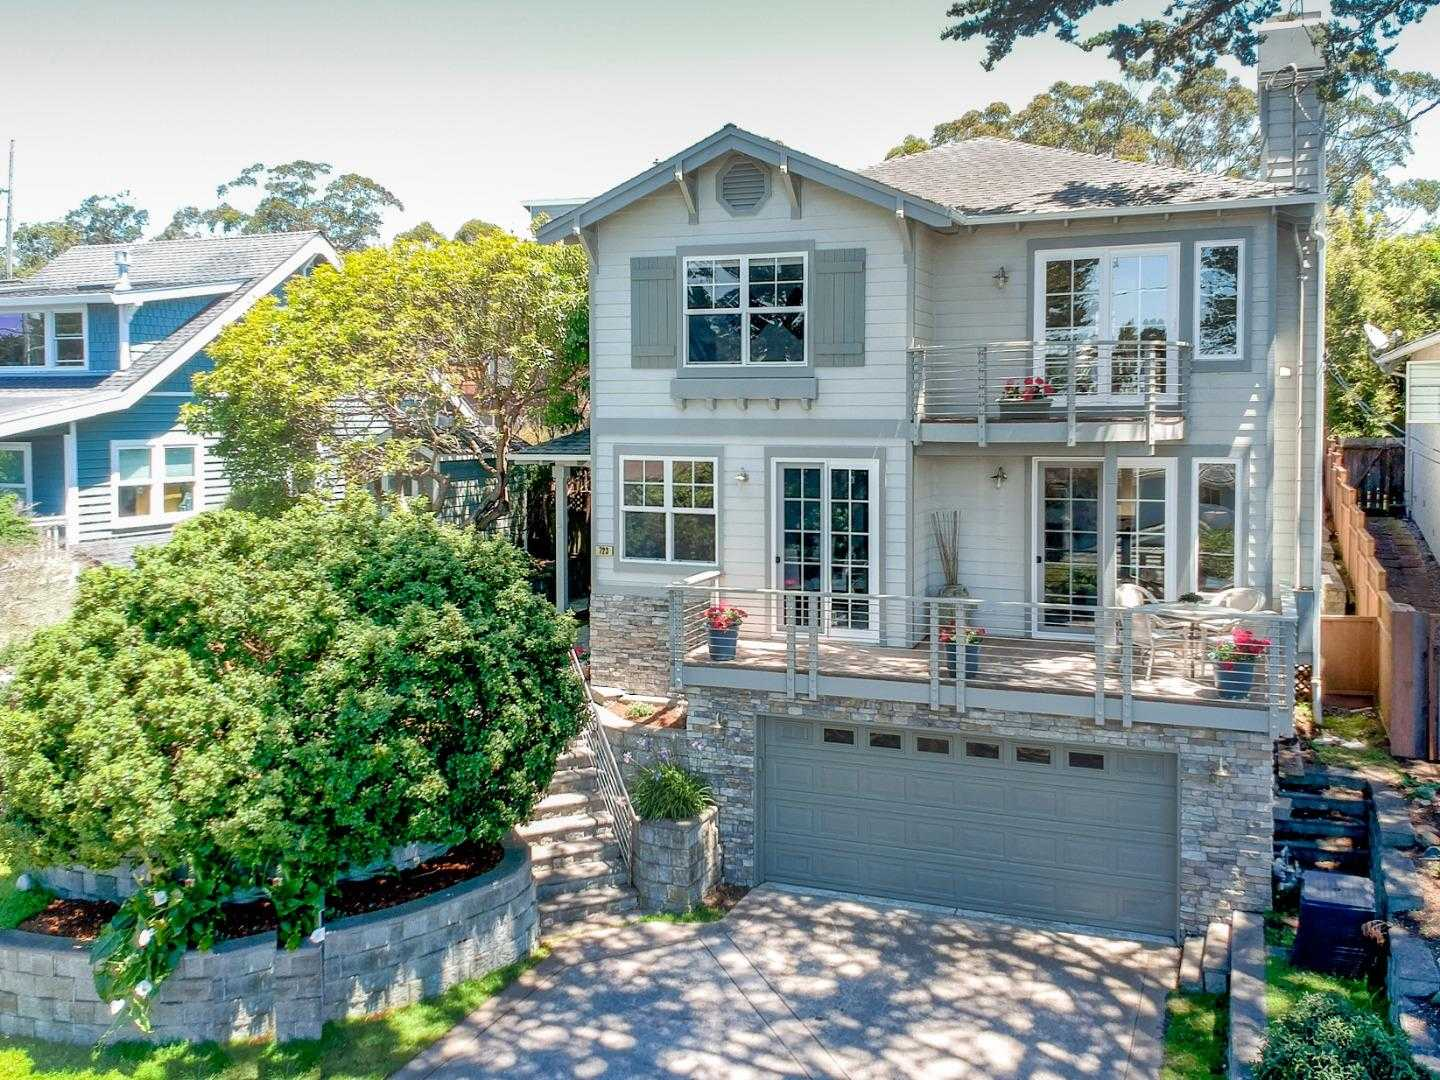 $1,375,000 - 4Br/3Ba -  for Sale in Moss Beach